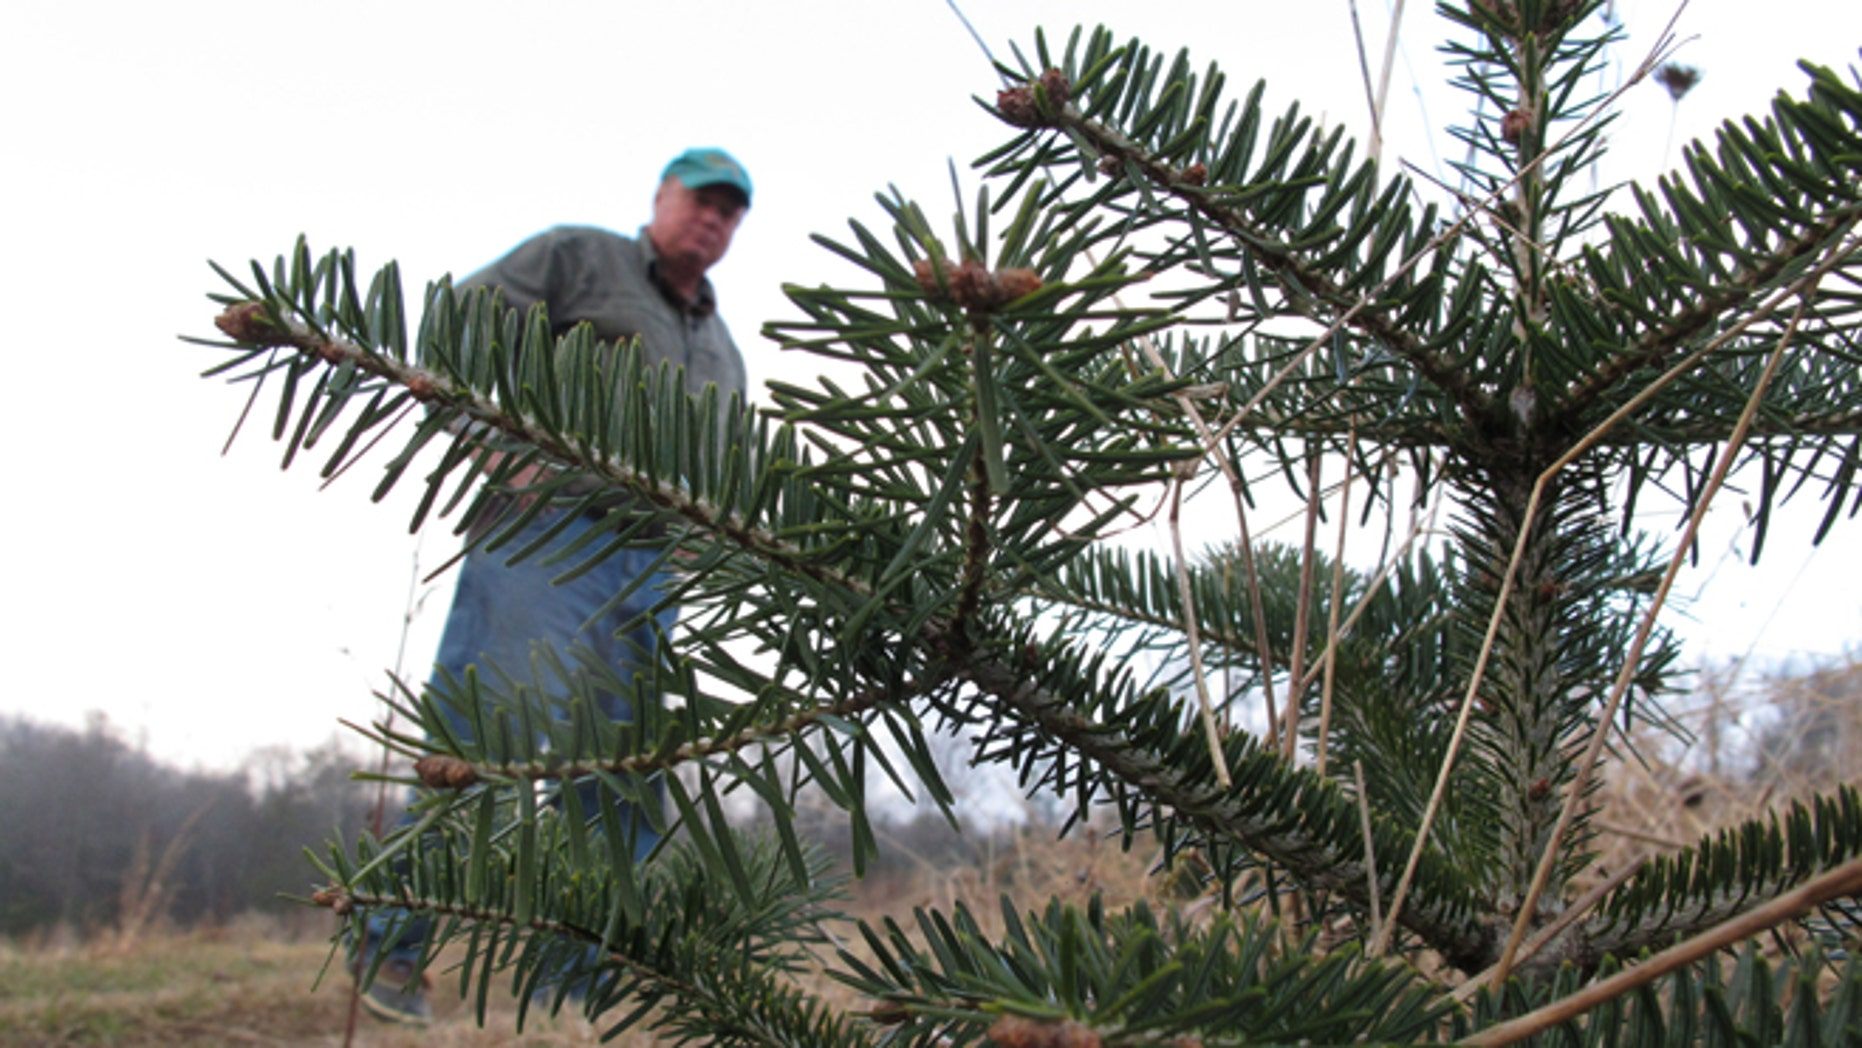 Nov. 16, 2013: In this photo, tree farmer Jeff Pollard inspects a Turkish fir seedling on one of his farms in Bakersville, N.C.  Pollard has been growing Fraser fir for nearly 40 years, but a root-rotting mold has him looking to the Turkish species to help save his family farm.